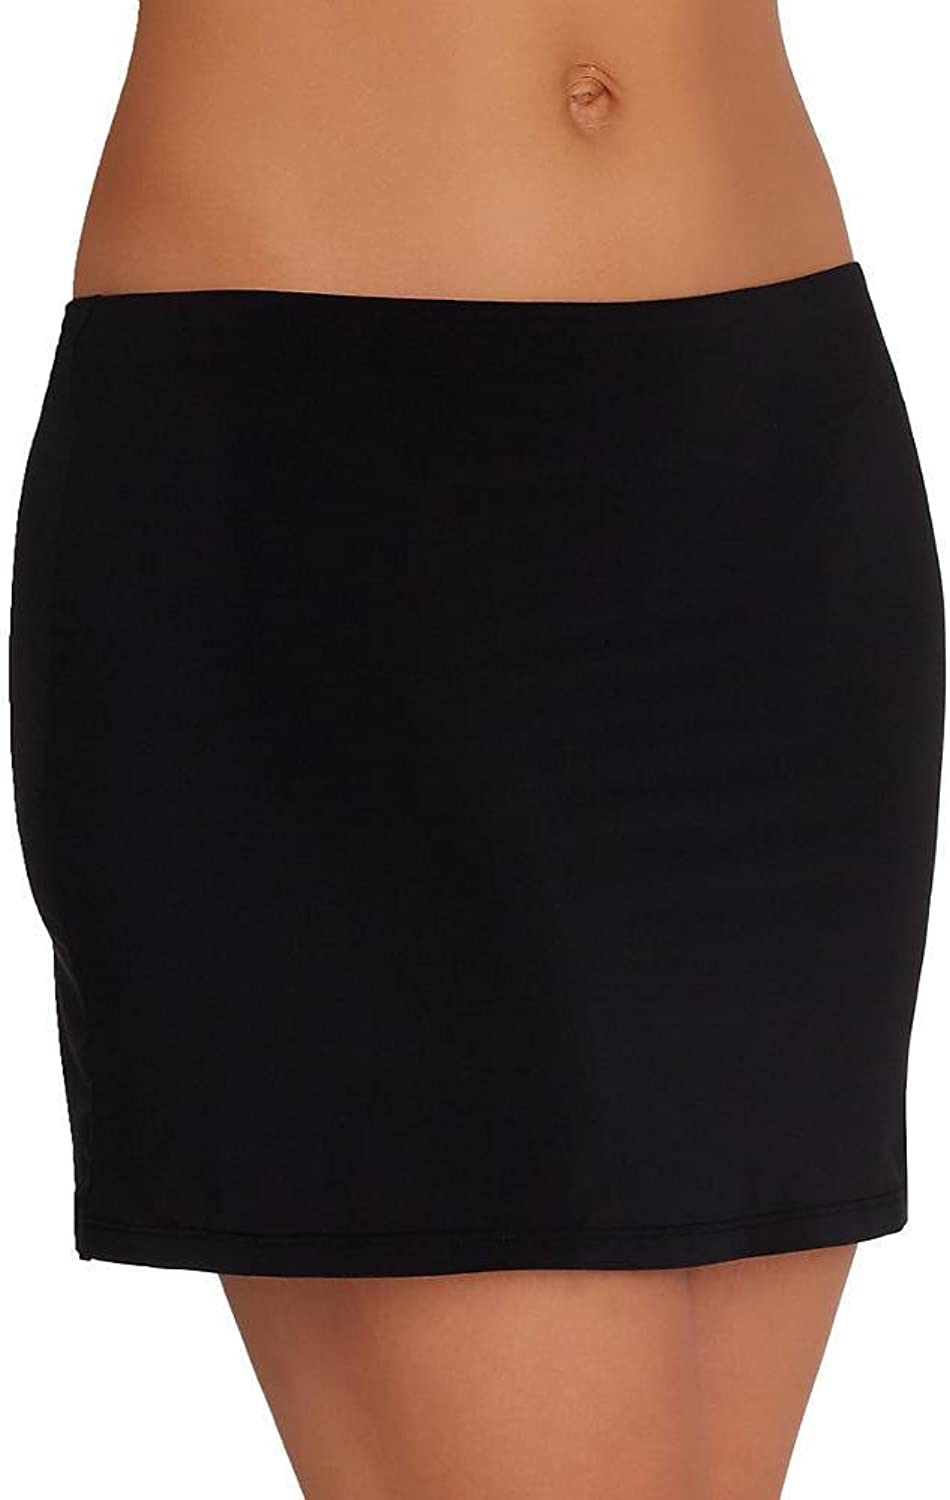 Bumbrella by Cici Soleil Womens 2in1 No Squeeze Pantyslip XS black